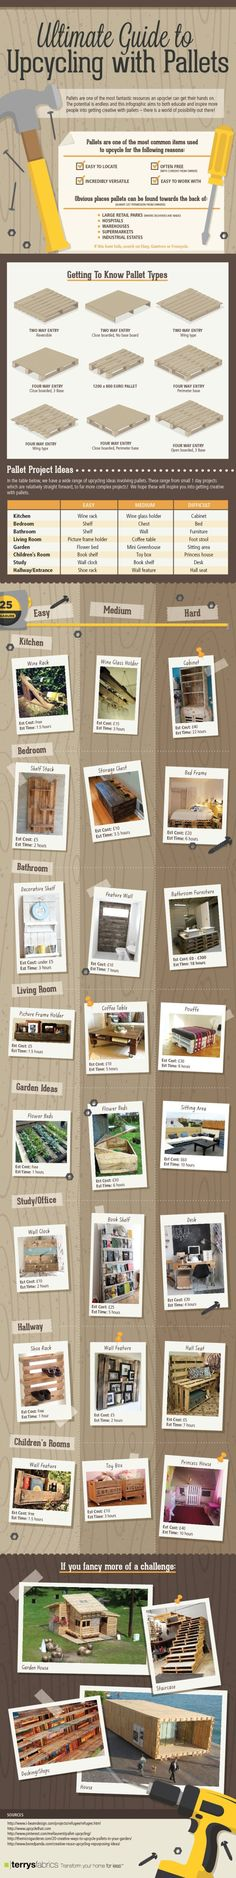 #Ultimate #guide to #upcycling with #pallets !